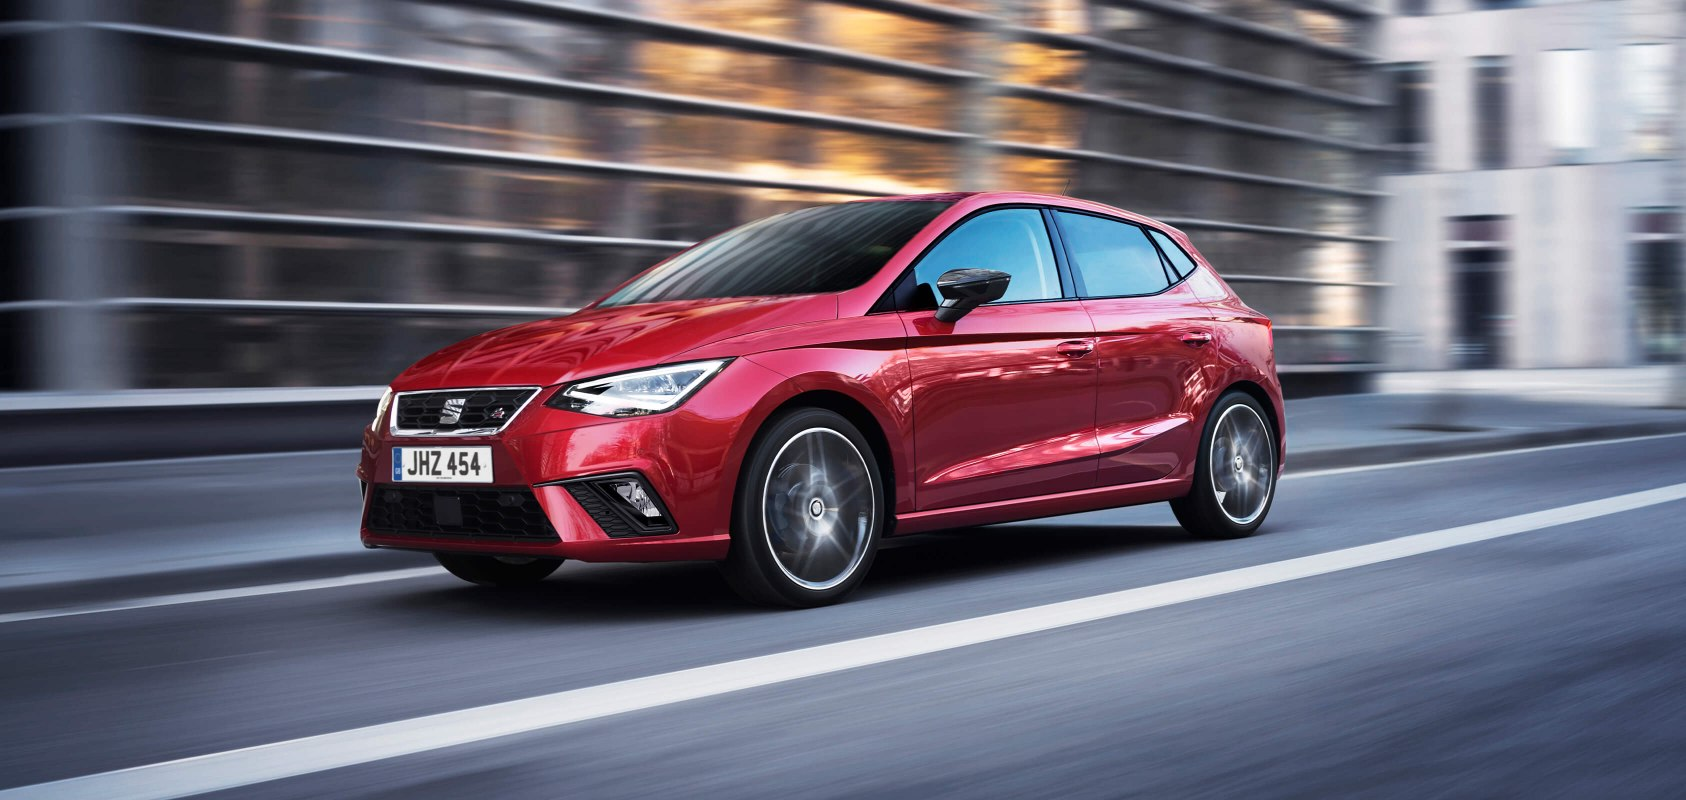 SEAT Ibiza - Front view of the car driving